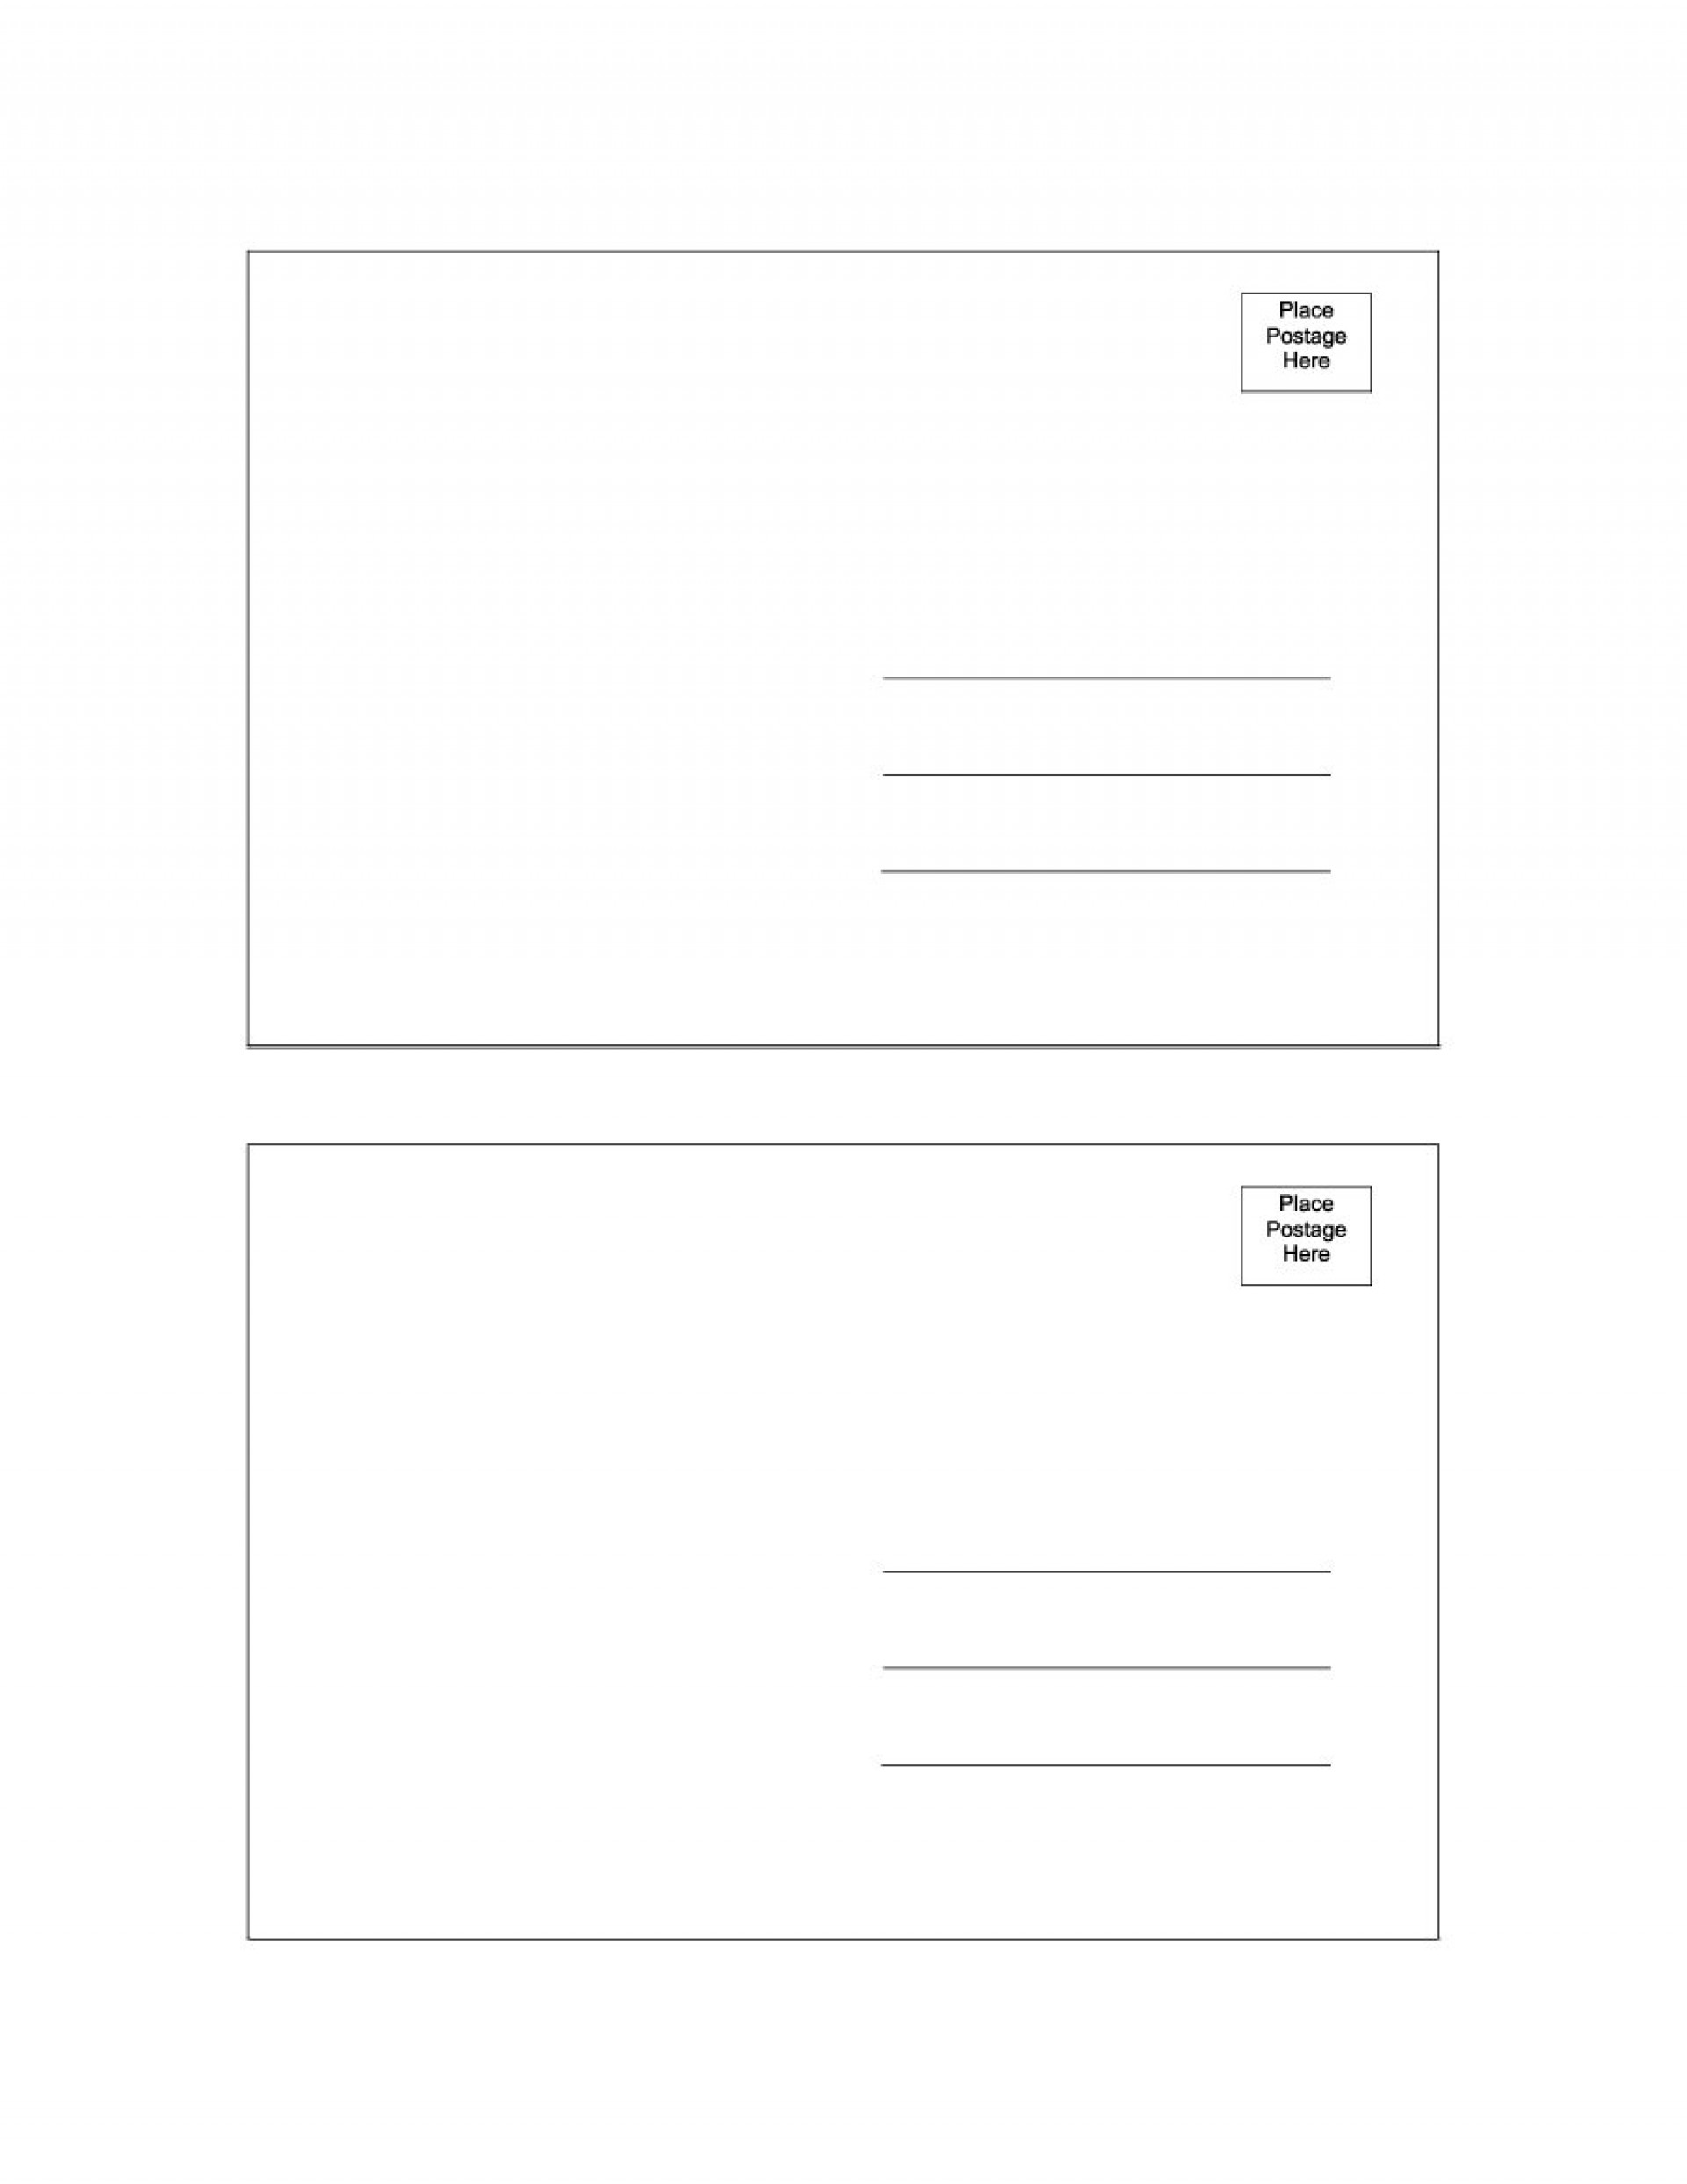 047 Postcard Clipart Template Blank Free Fascinating Ideas.